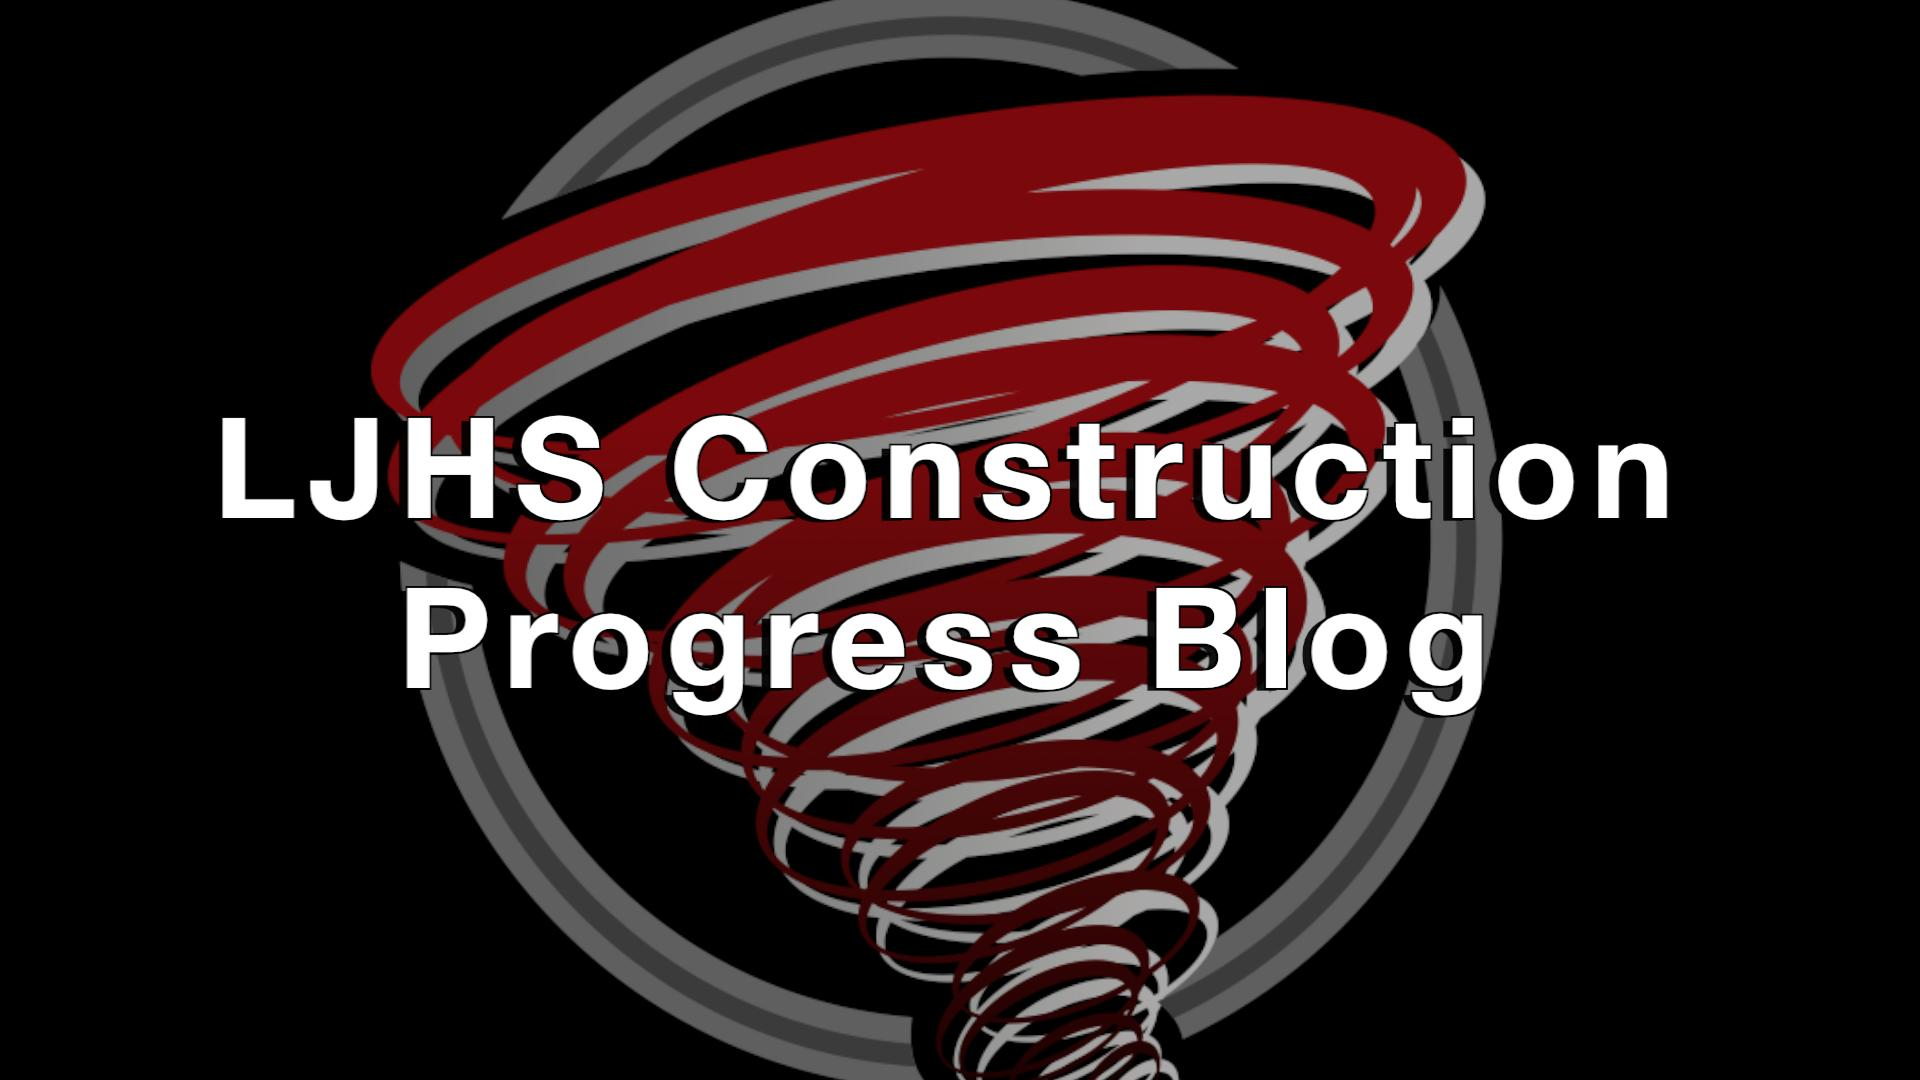 LJHS Construction Progress Blog with Red Storm Image on black background